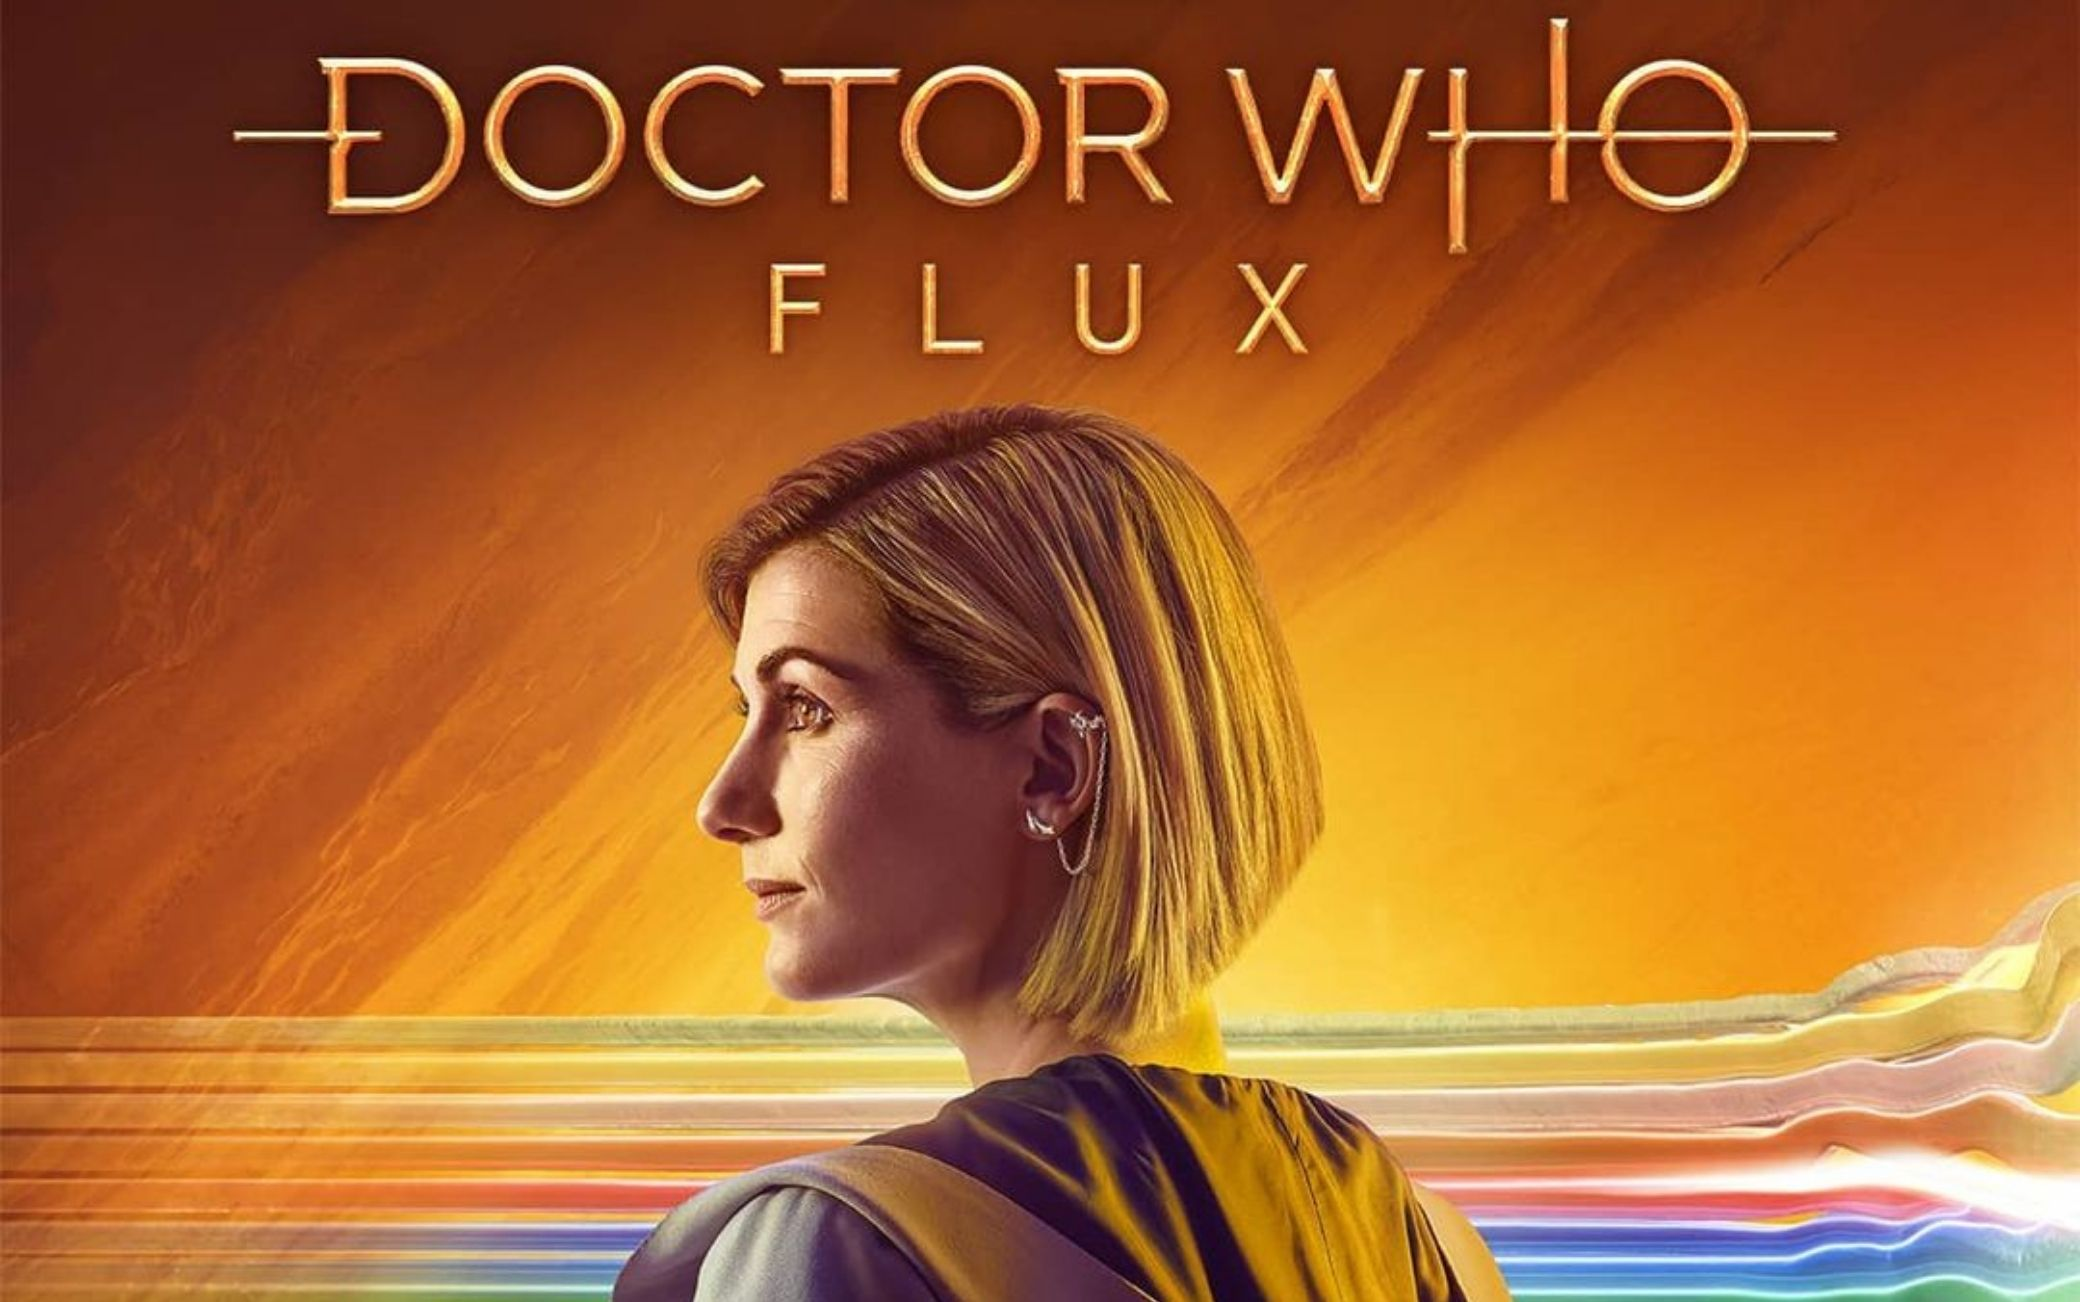 doctor who 13